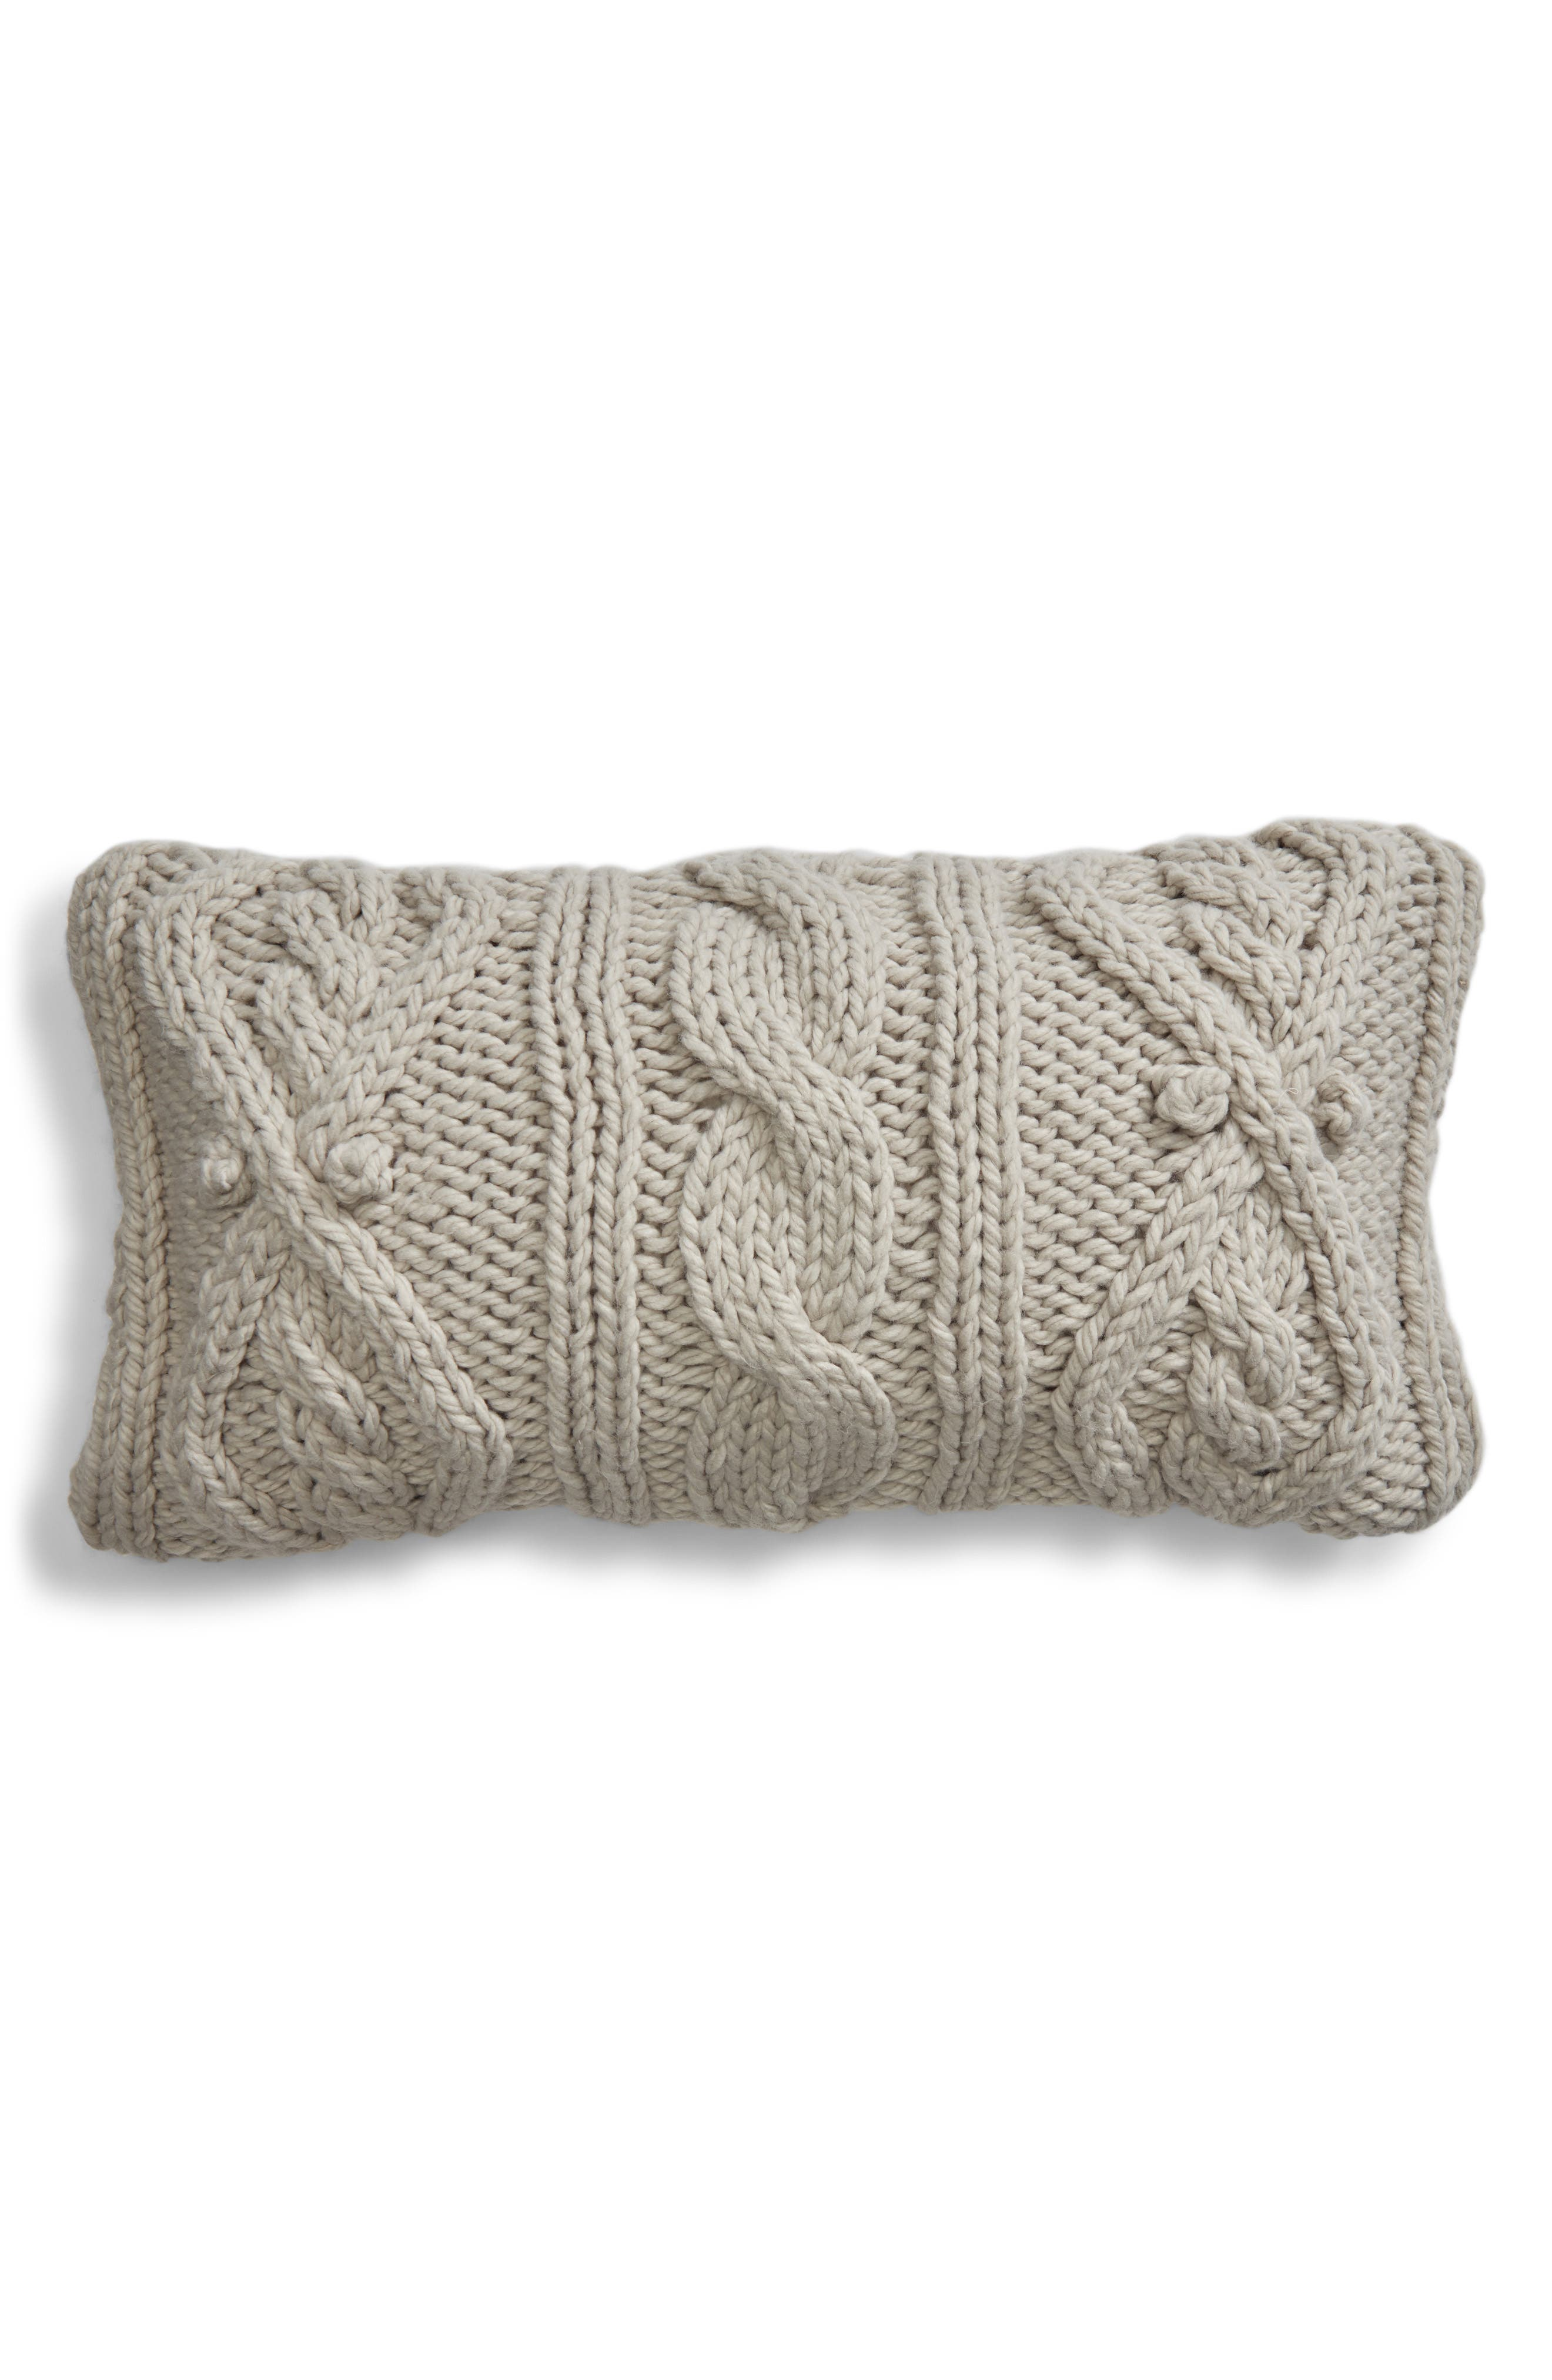 Chunky Cable Knit Accent Pillow,                             Main thumbnail 1, color,                             020